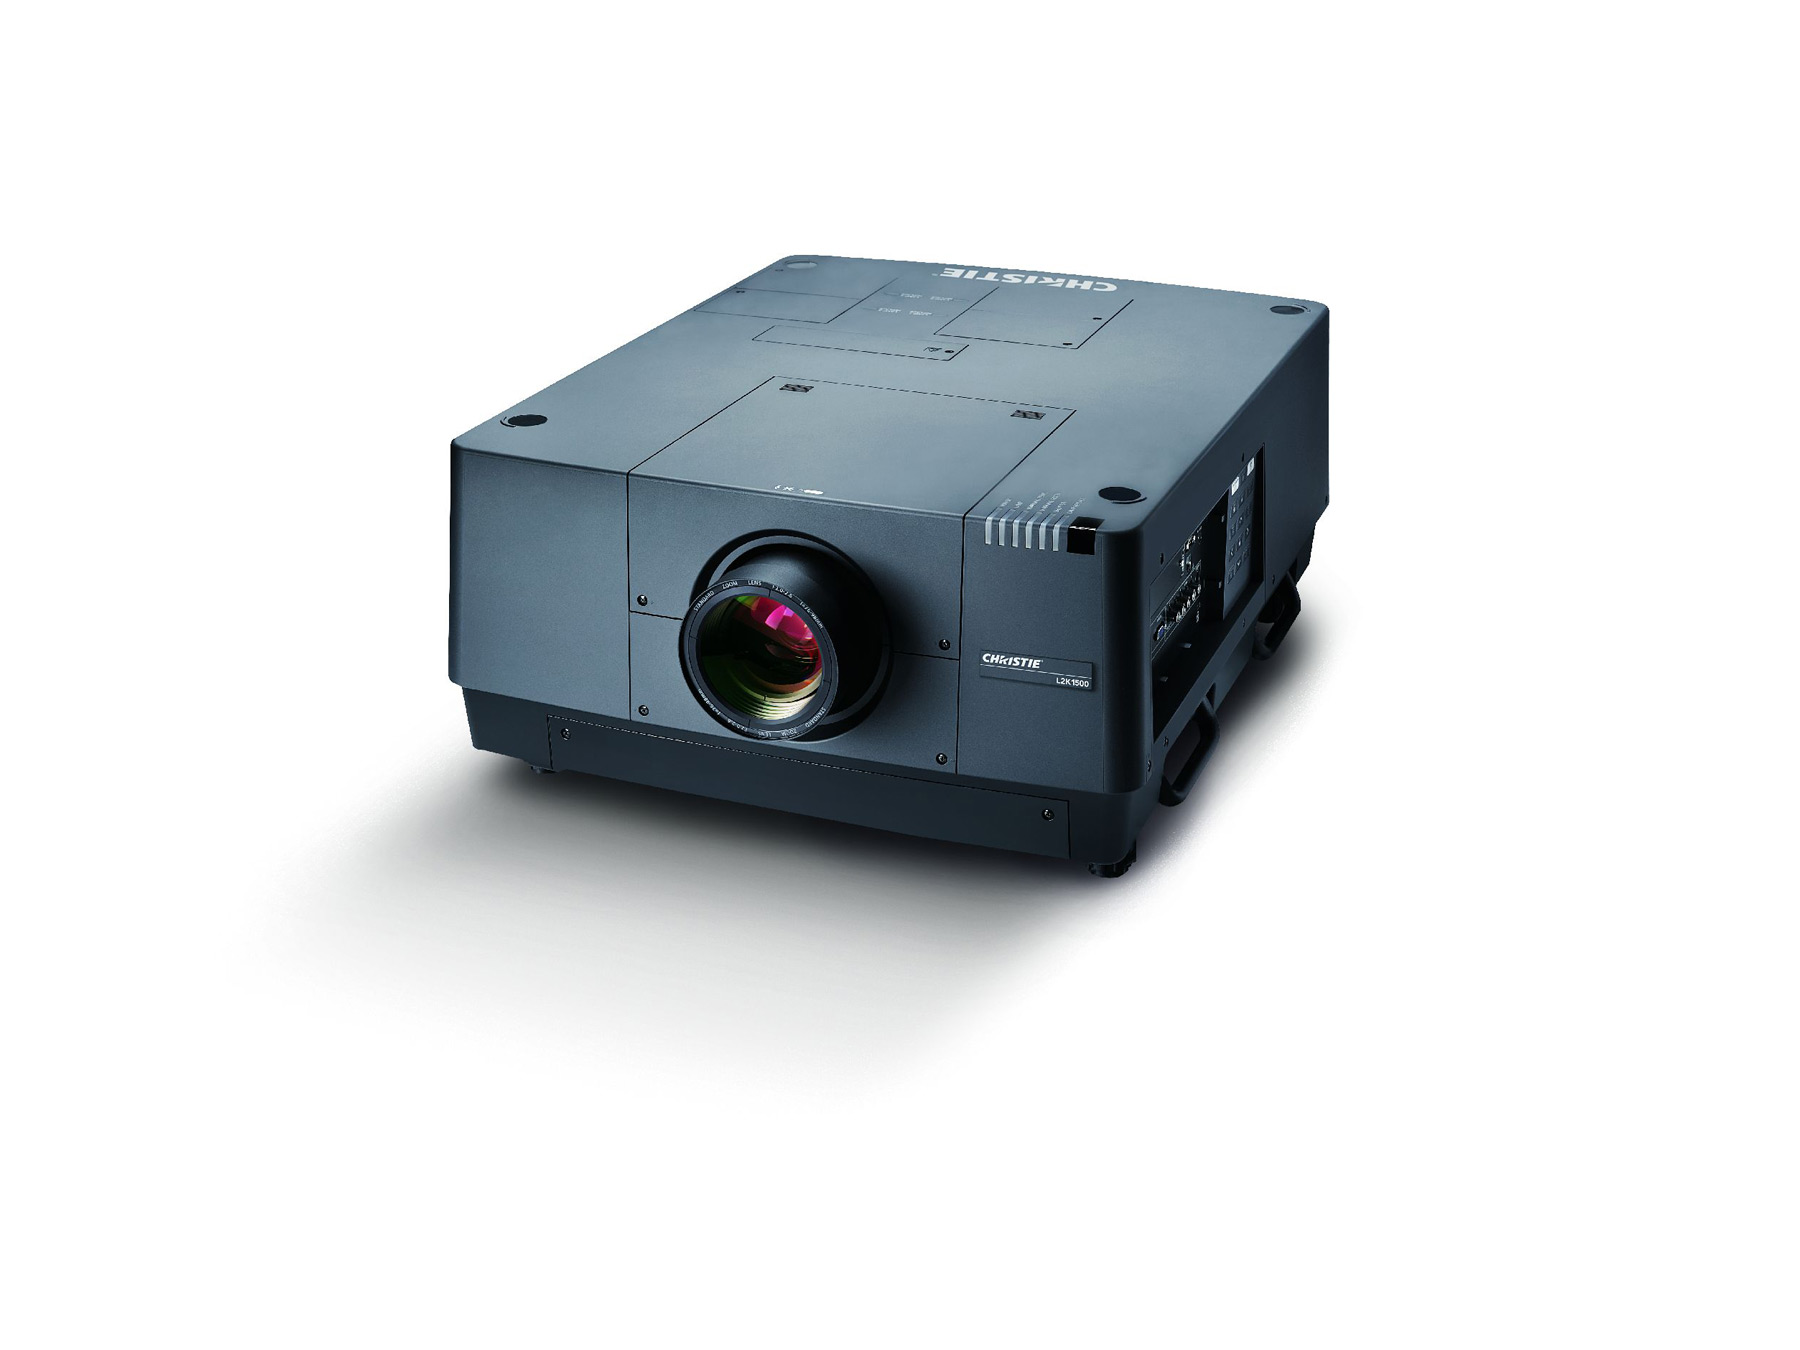 /globalassets/.catalog/products/images/christie-l2k1500/gallery/christie-l2k-1500-3-lcd-digital-projector-image-17.jpg